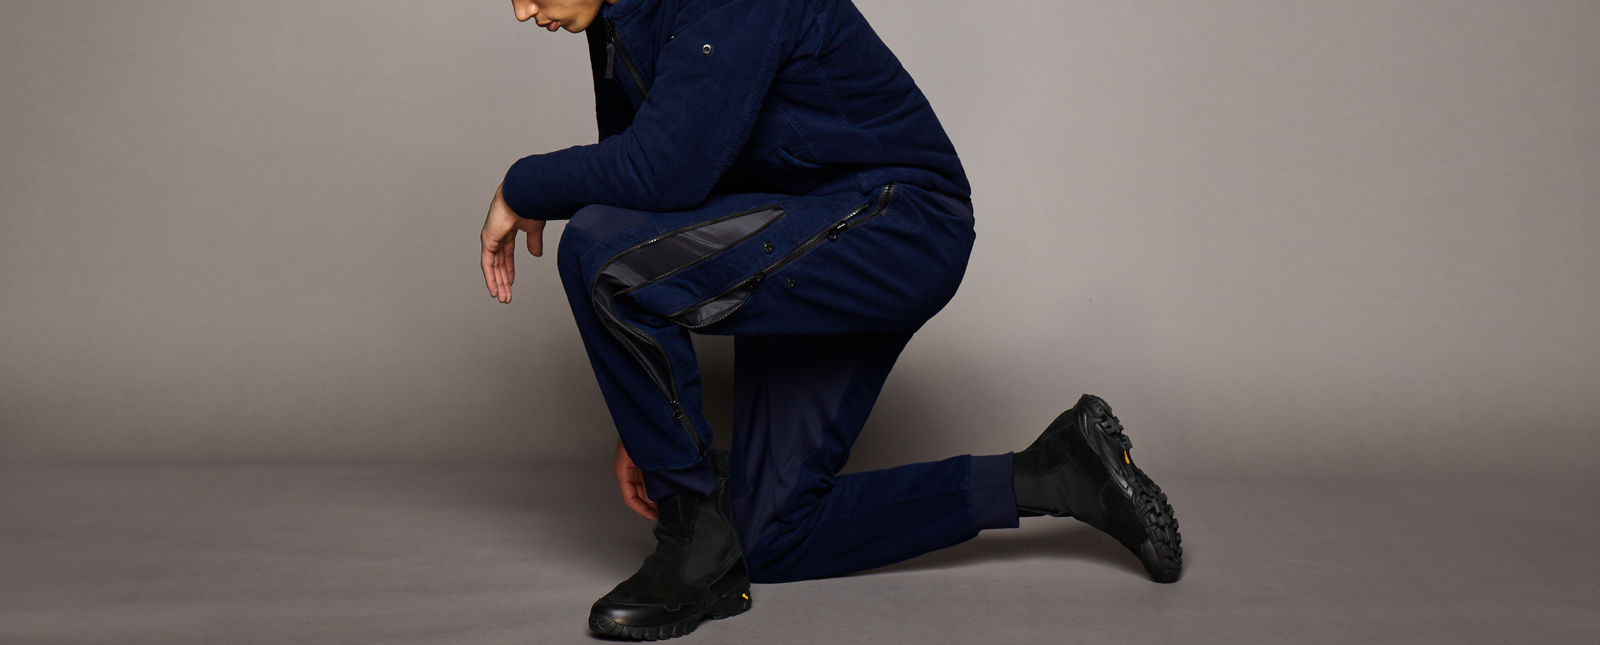 Model on one knee wearing dark blue pants with black, zippered nylon inserts along the sides of the legs and a matching dark blue jacket, with black boots